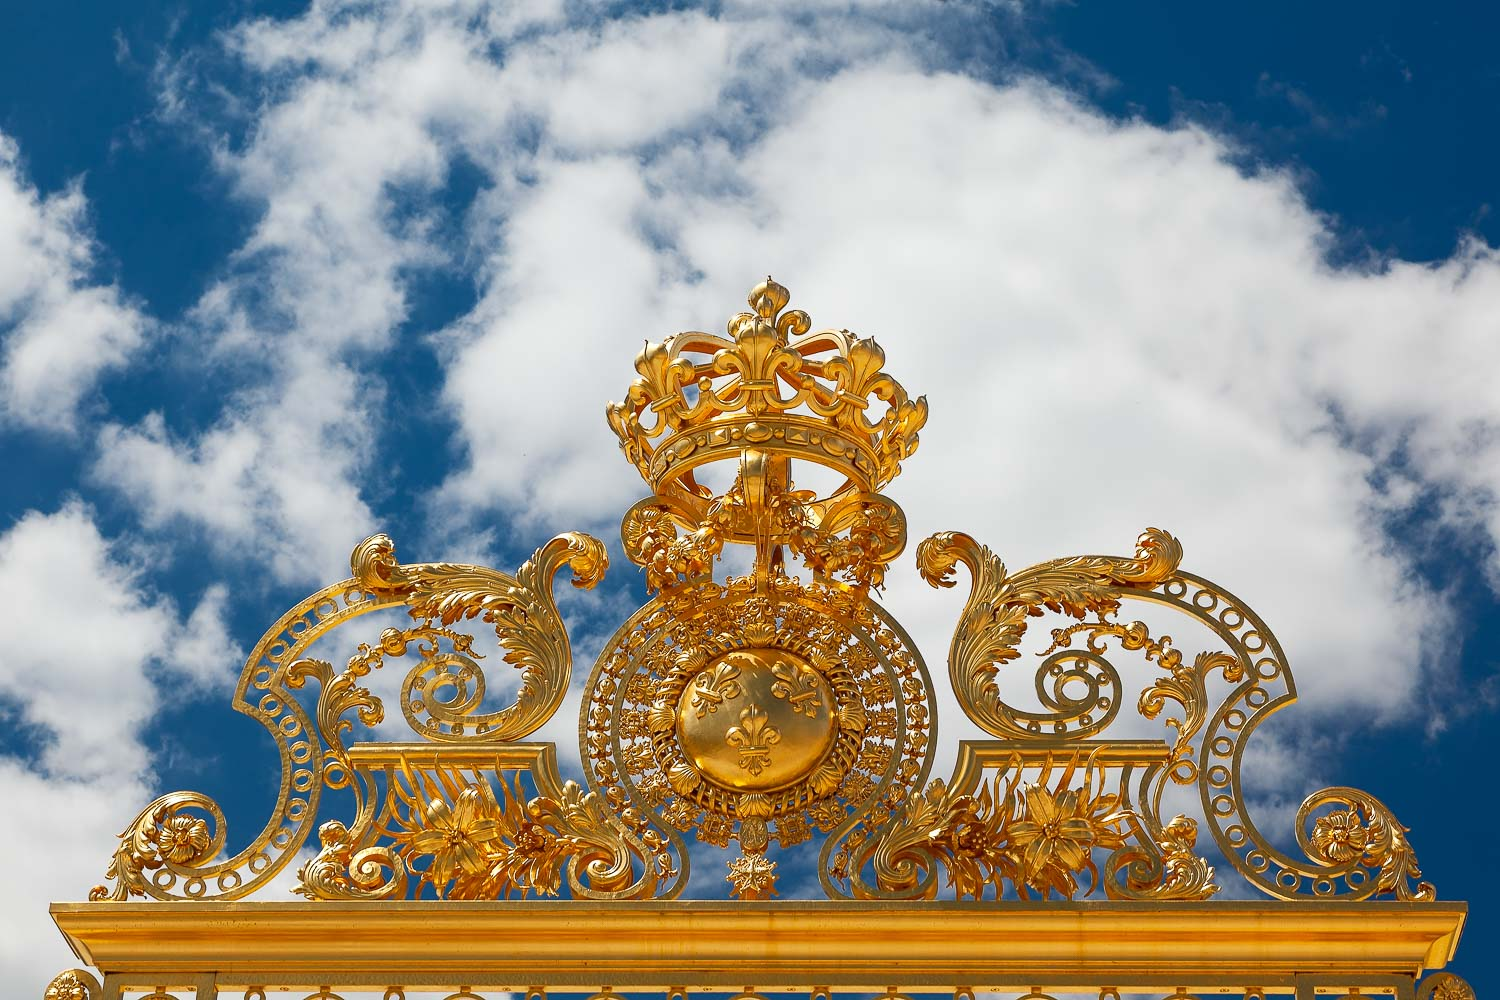 A detail of the top of the entrance gate at the glorious Palace of Versailles, France